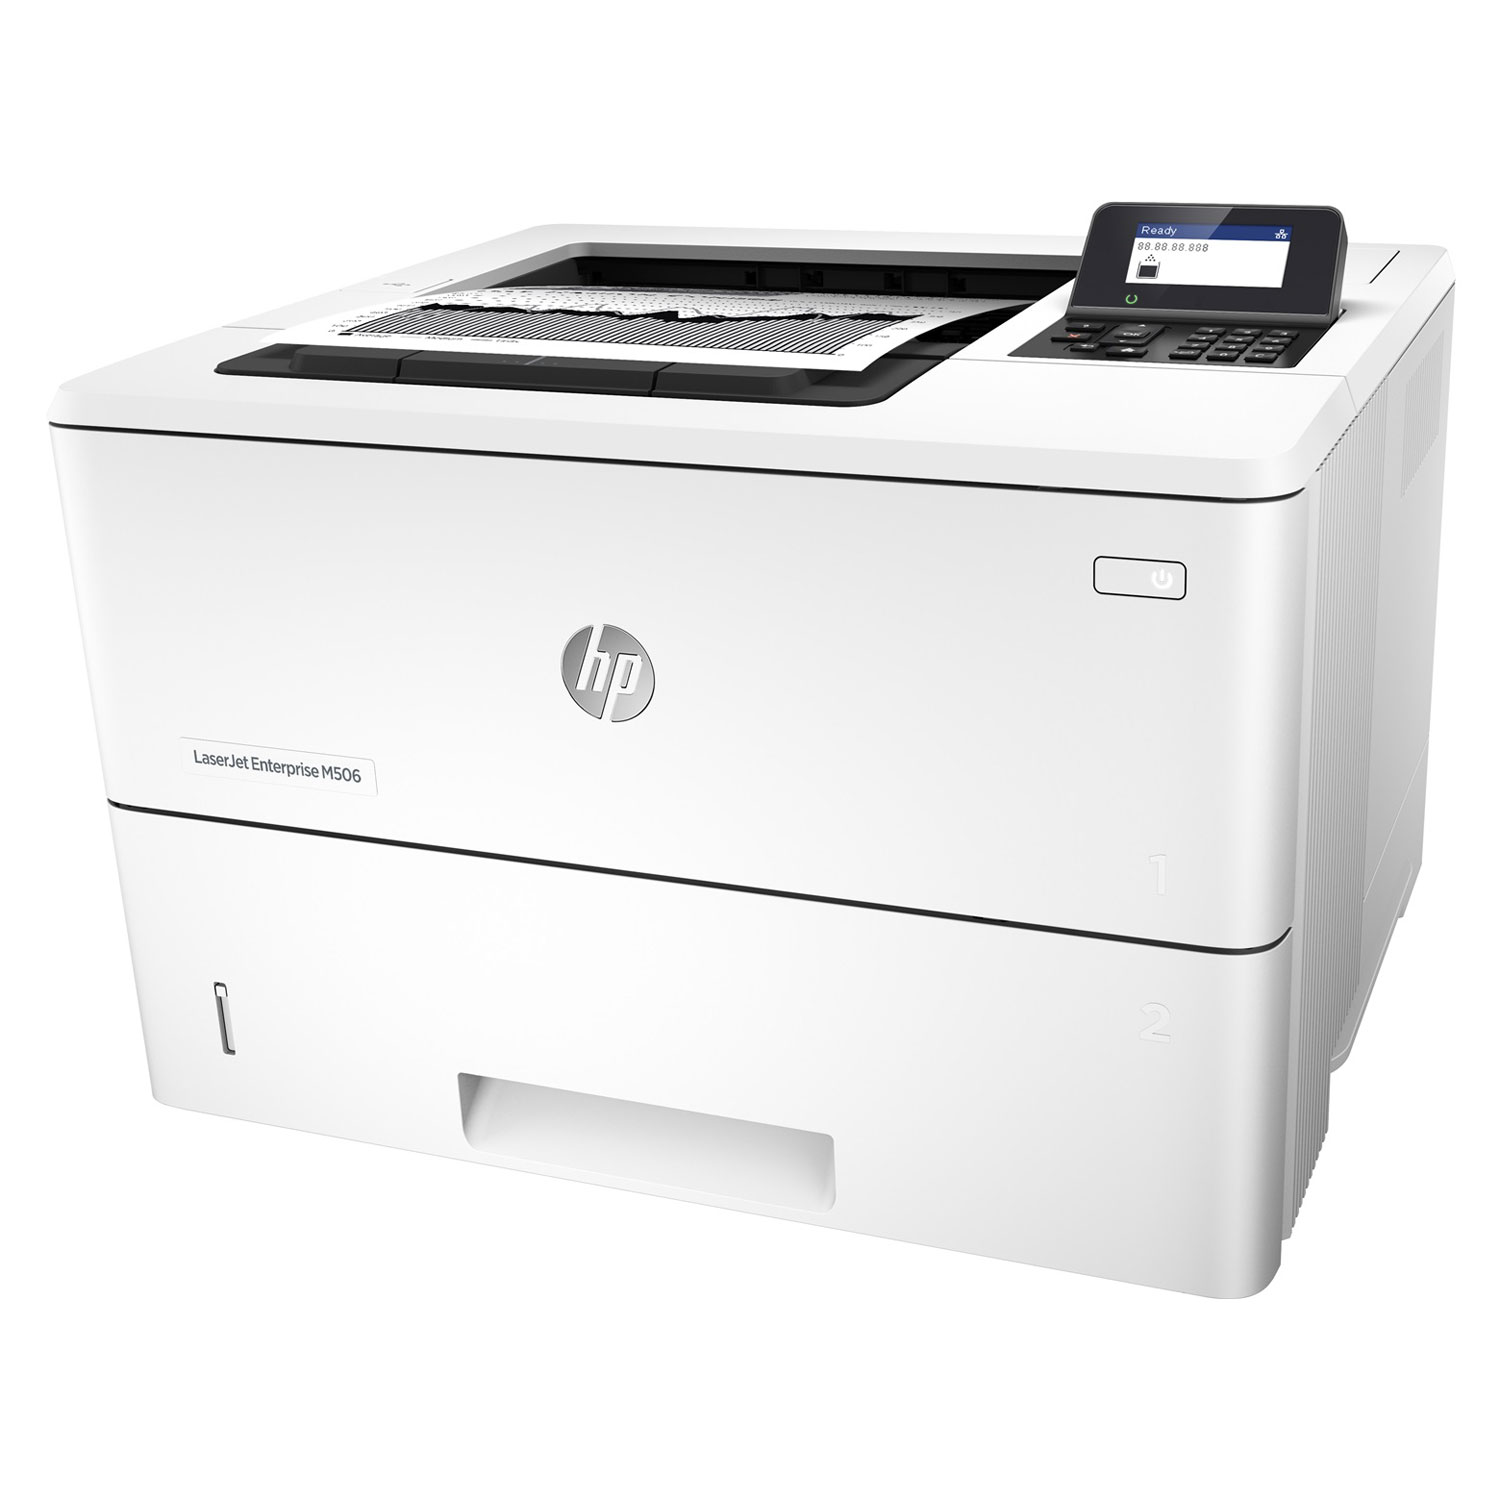 hp laserjet enterprise m506dn imprimante laser hp sur. Black Bedroom Furniture Sets. Home Design Ideas